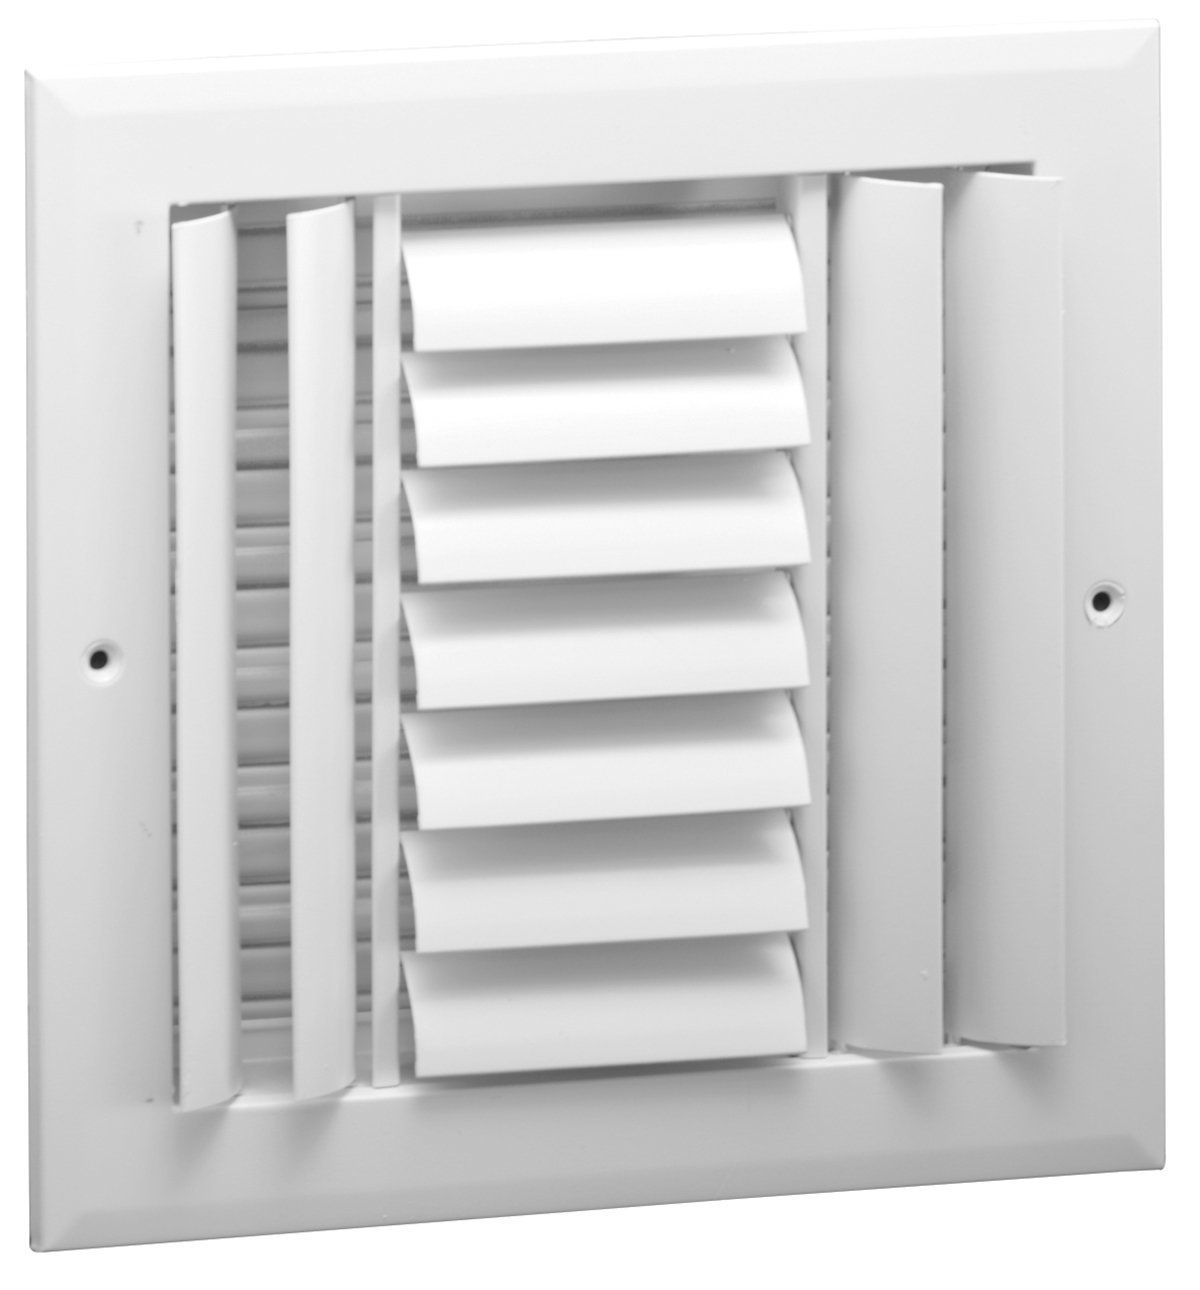 12 X 12 3 Way Air Vent Adjustable Aluminum Curved Blades Maximum Air Flow Hvac Grille For More Information Visi Air Vent Roof Vents Locker Storage